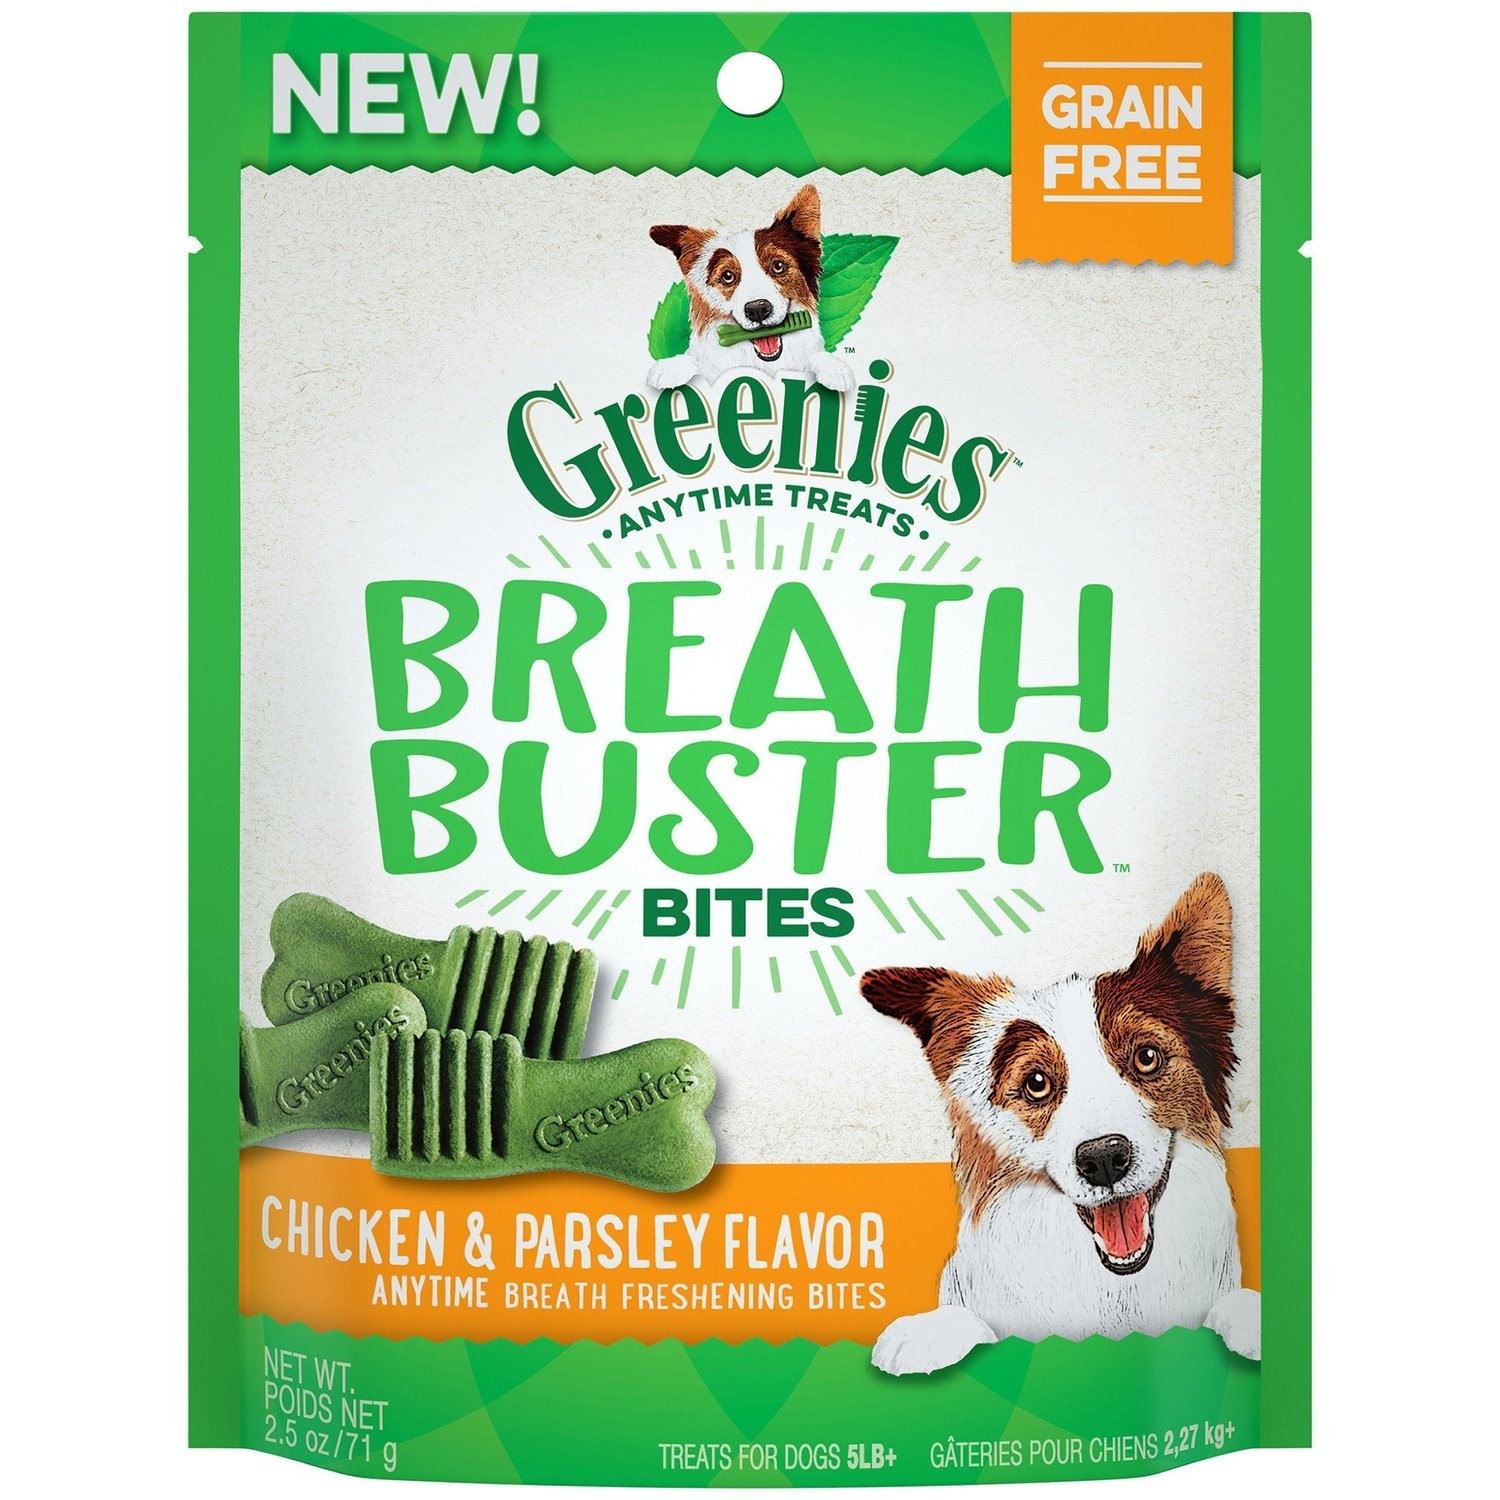 GREENIES BREATH BUSTER Bites Chicken & Parsley Flavor Treats for Dogs, 2.5 oz. (10/18) (T.SINGLES)